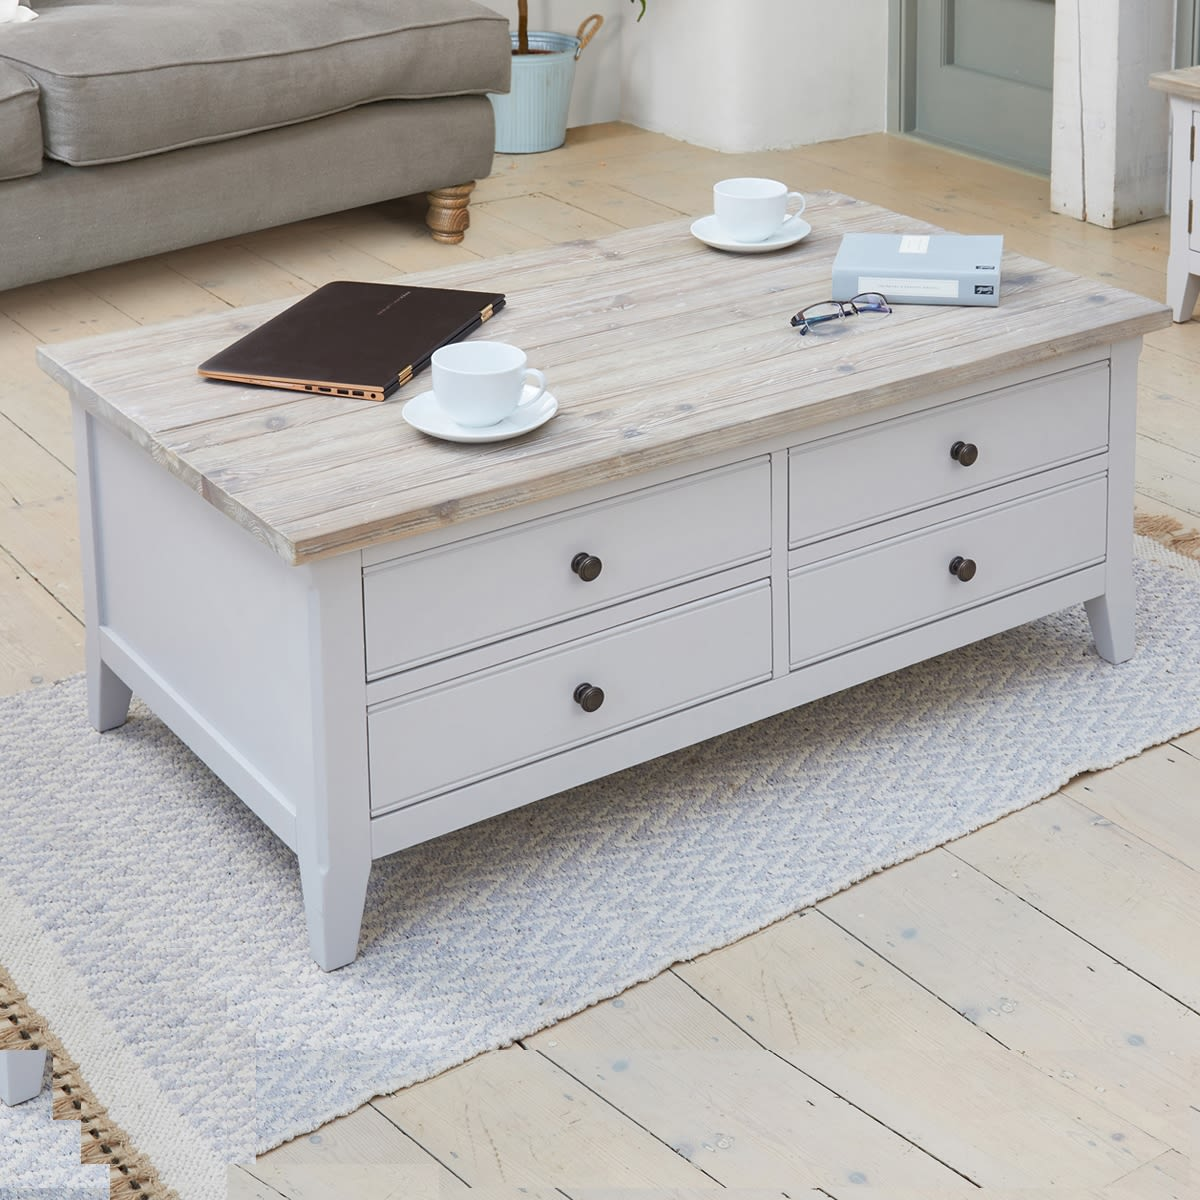 Large Coffee Table Nottingham: Signature Grey Large Coffee Table Was £360.00 Now £329.00